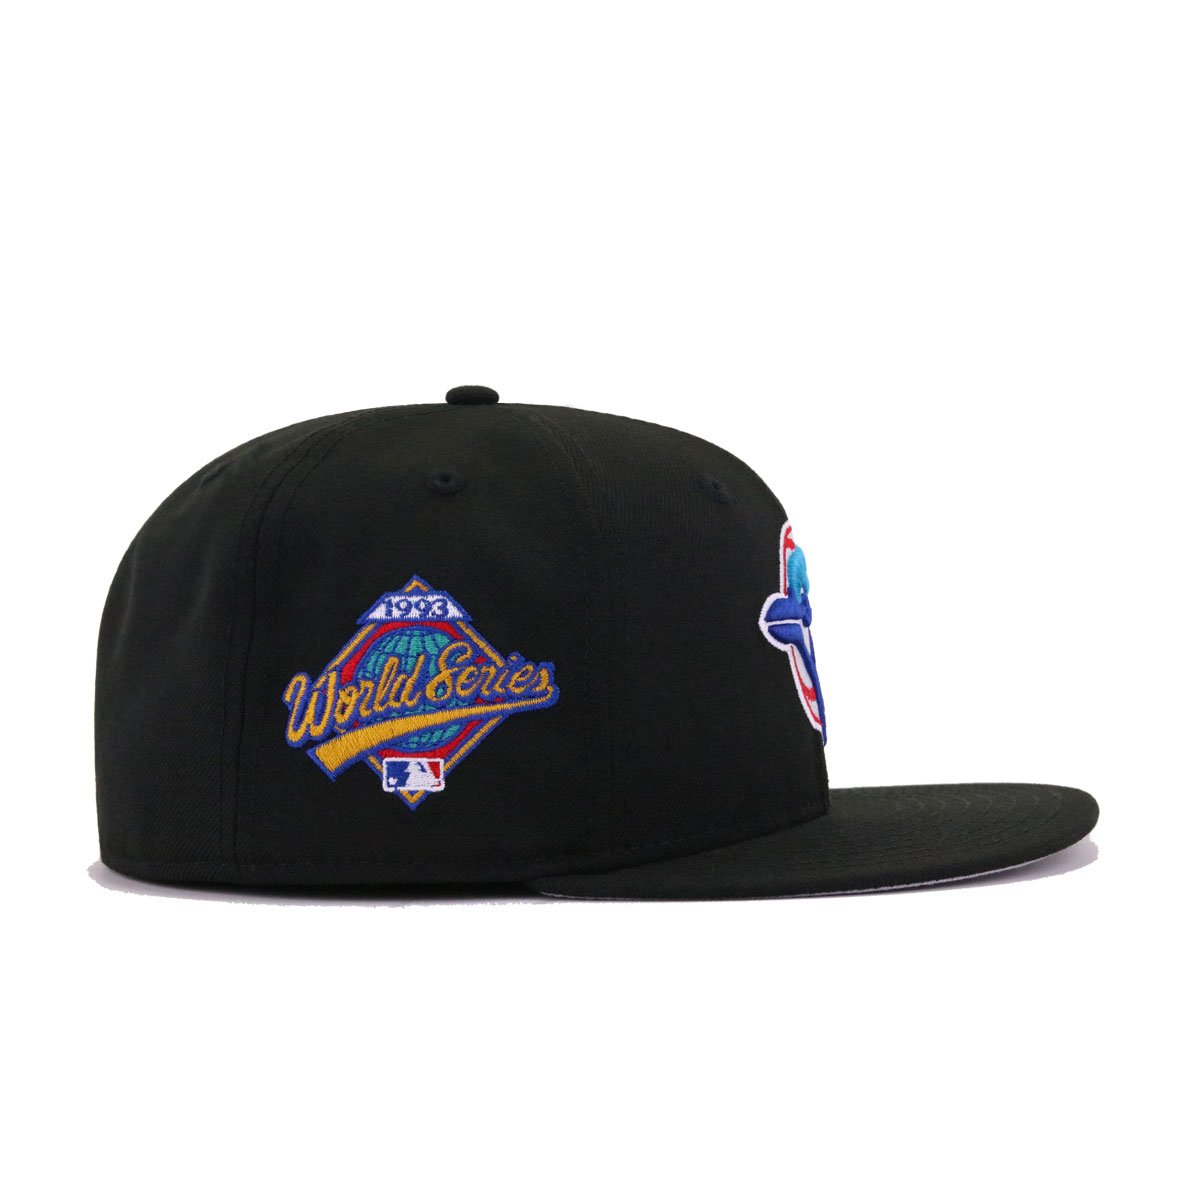 Toronto Blue Jays Black 1993 World Series New Era 59Fifty Fitted